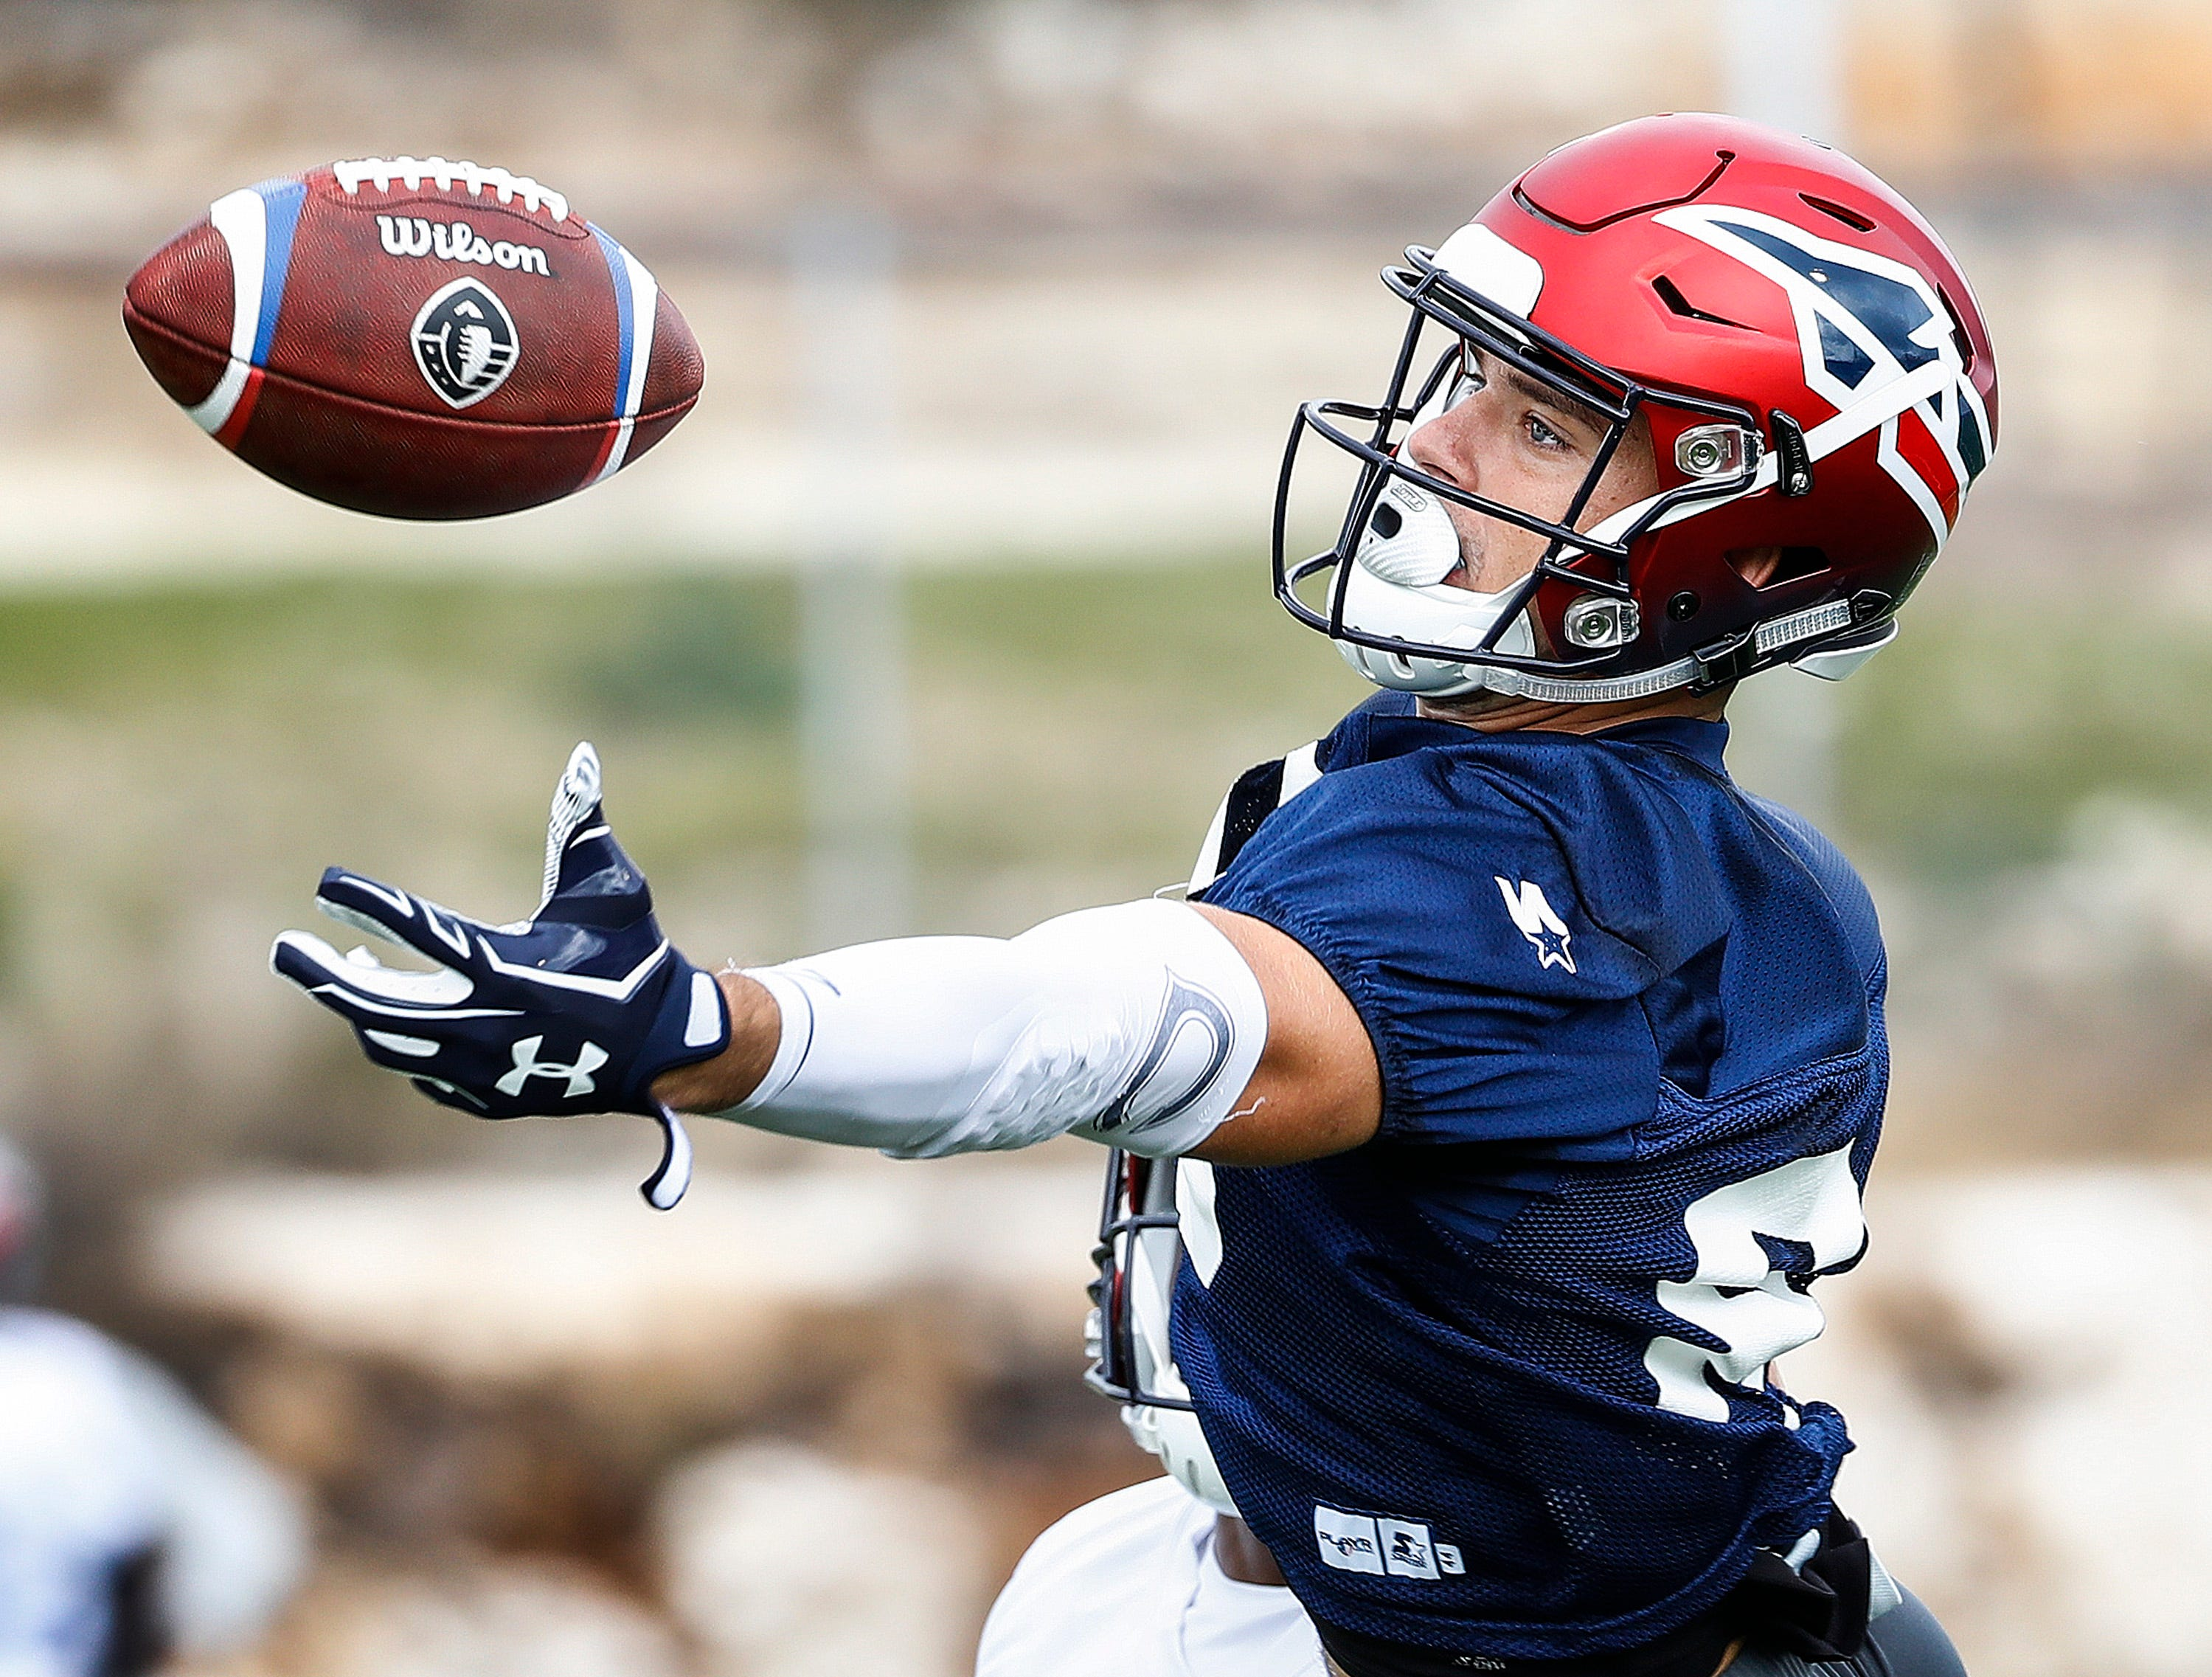 Memphis Express receiver Fabian Guerra (right) can not haul in a catch against defender Terrell Bonds (left) during training camp in San Antonio, Texas.